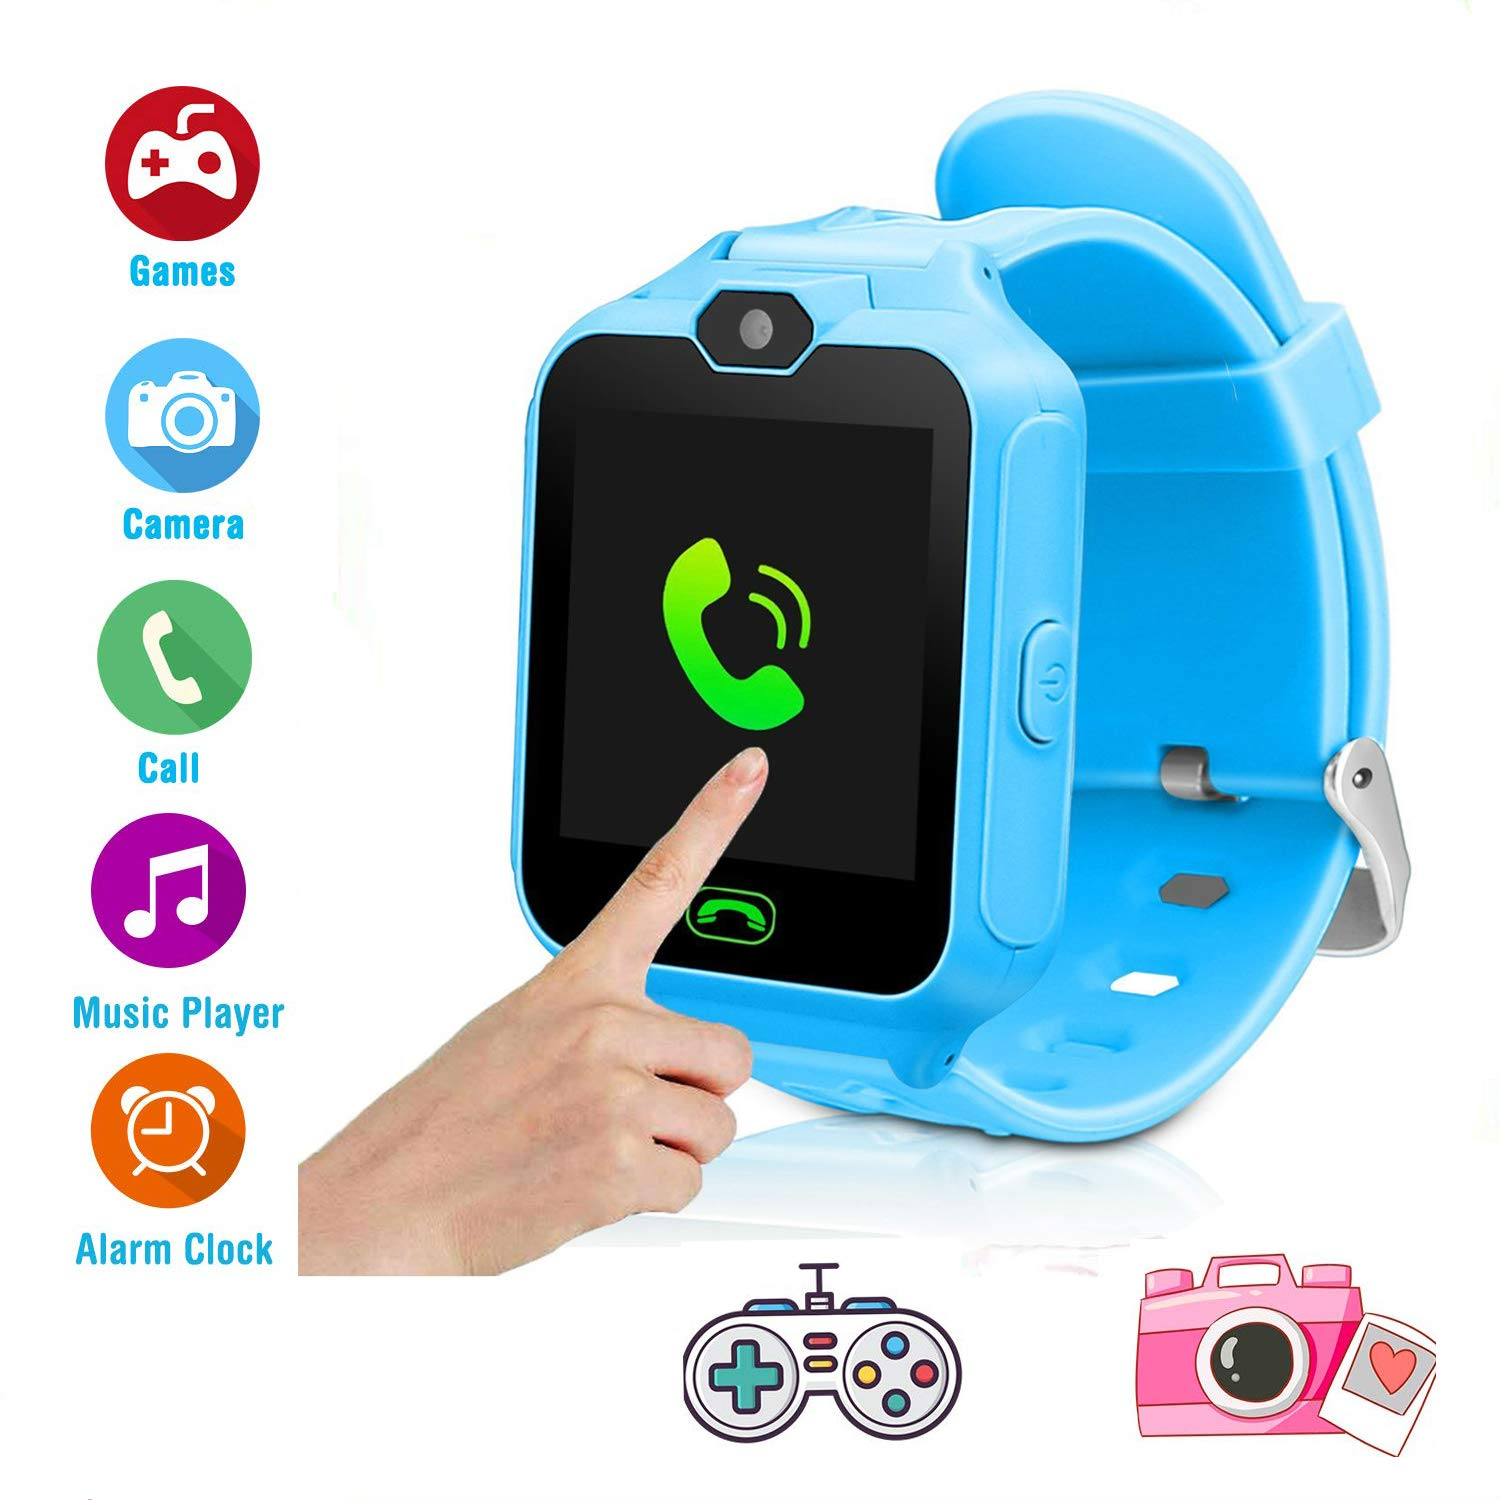 Kids Smartwatch Phone Game Watch Touch Screen for Boys Kids Two-Way Call with Camera Games MP3 Music Player Alarm Clock with SIM and SD Slot Best Birthday Gifts (Blue)